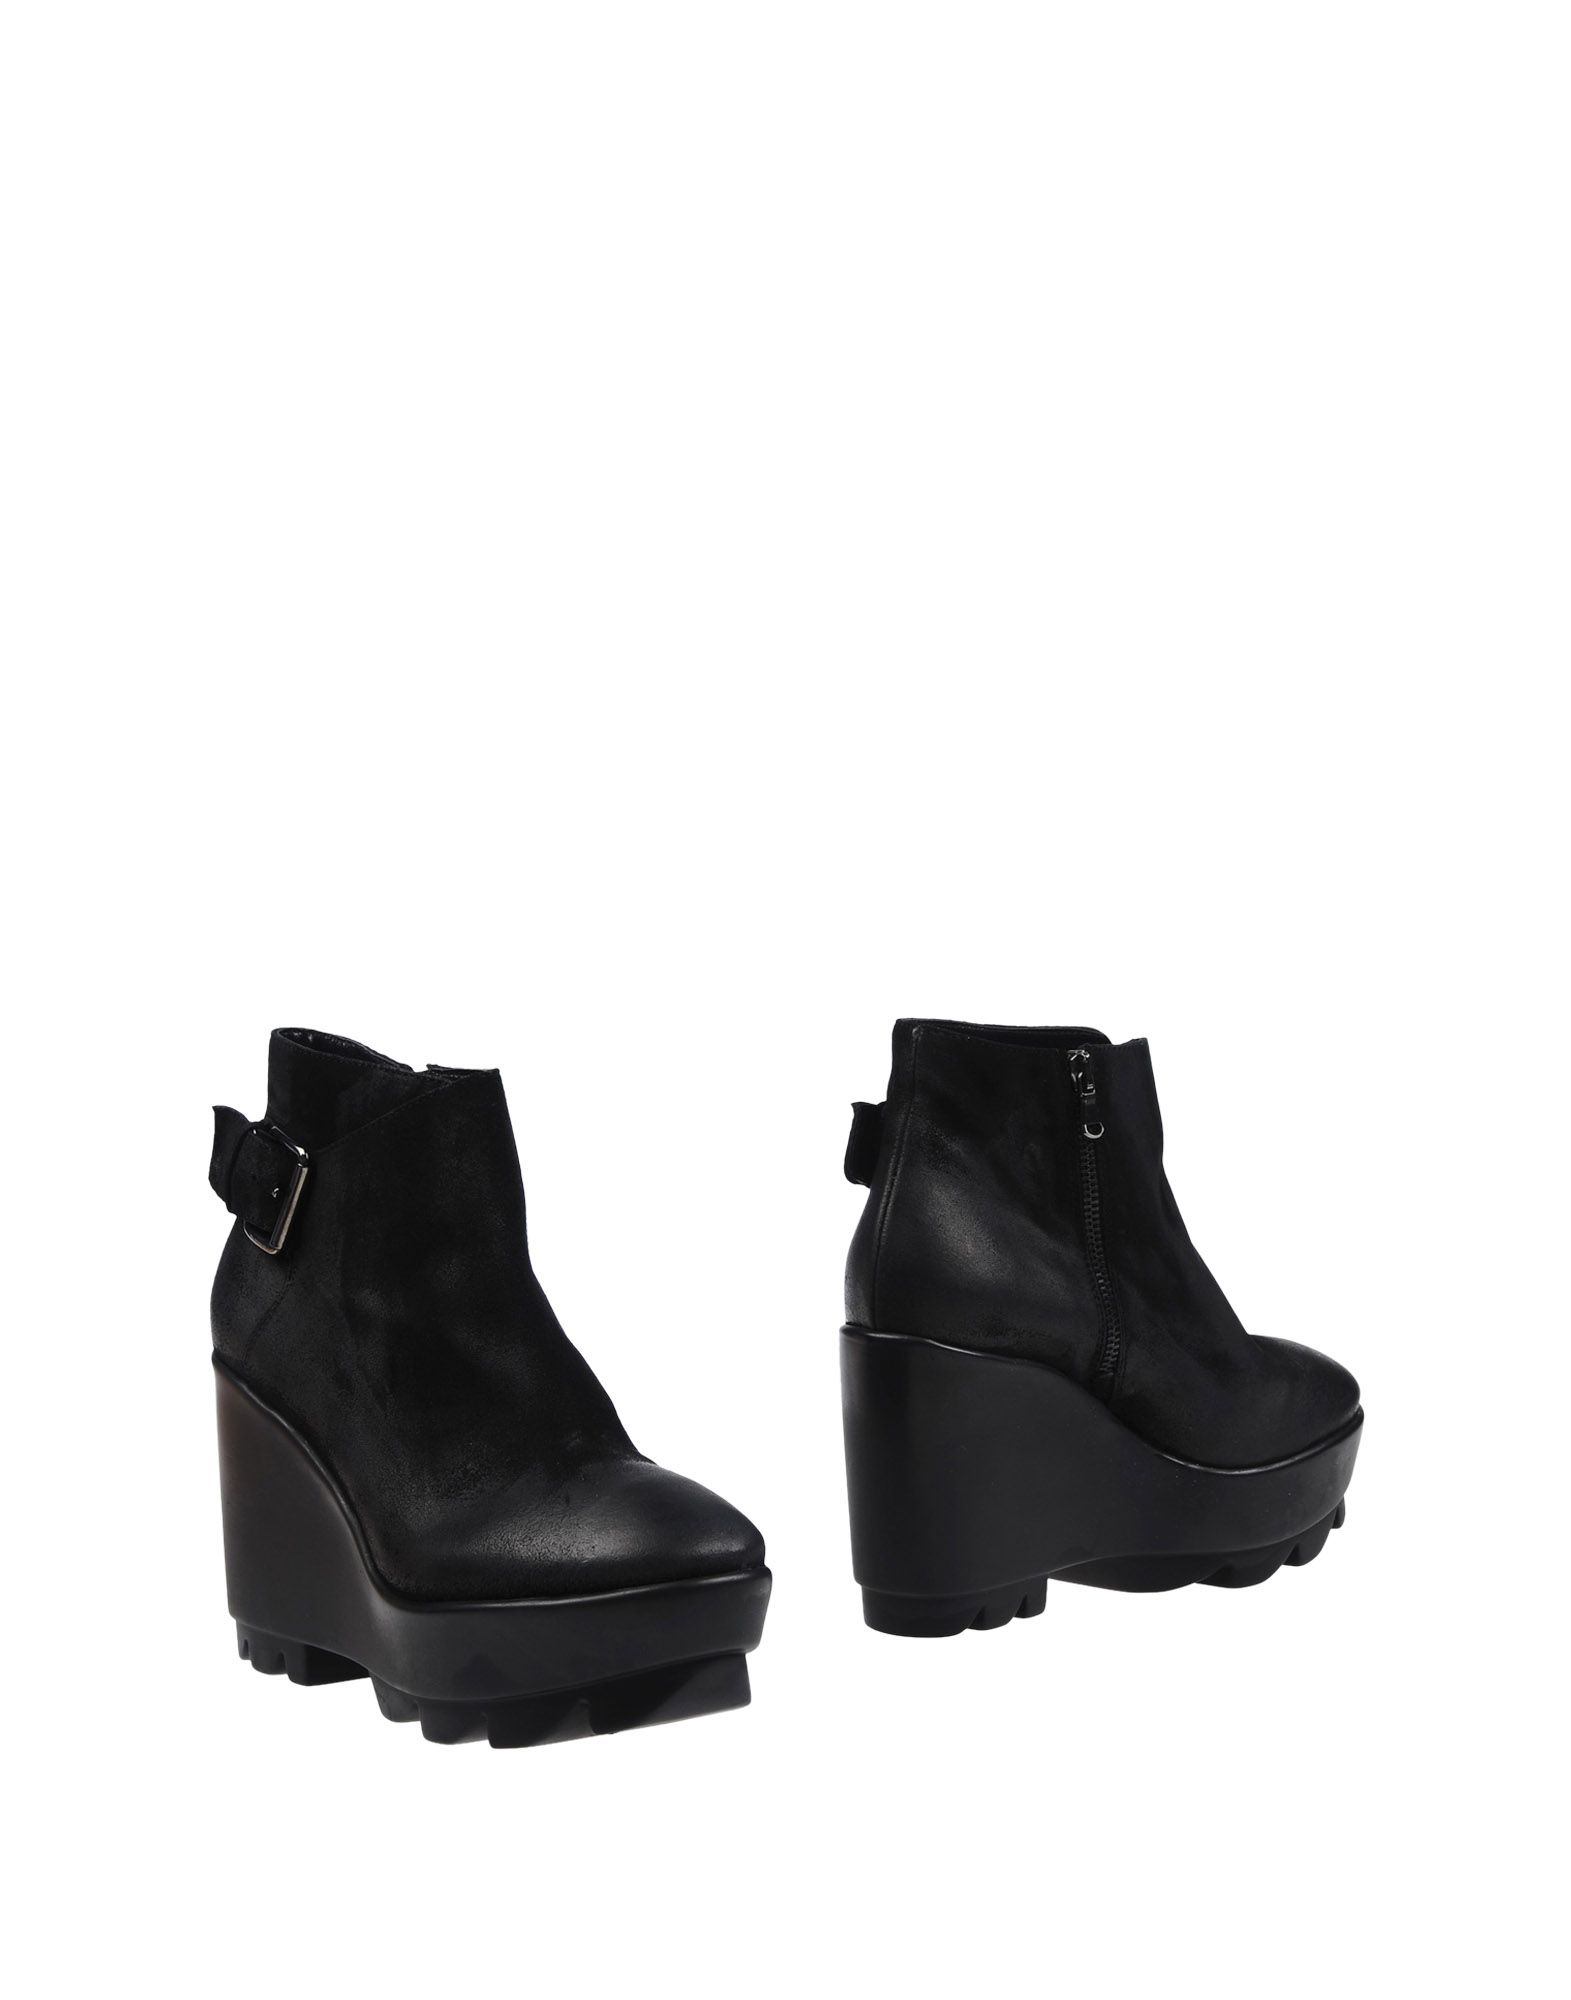 Bottine Jfk Femme - Bottines Jfk sur